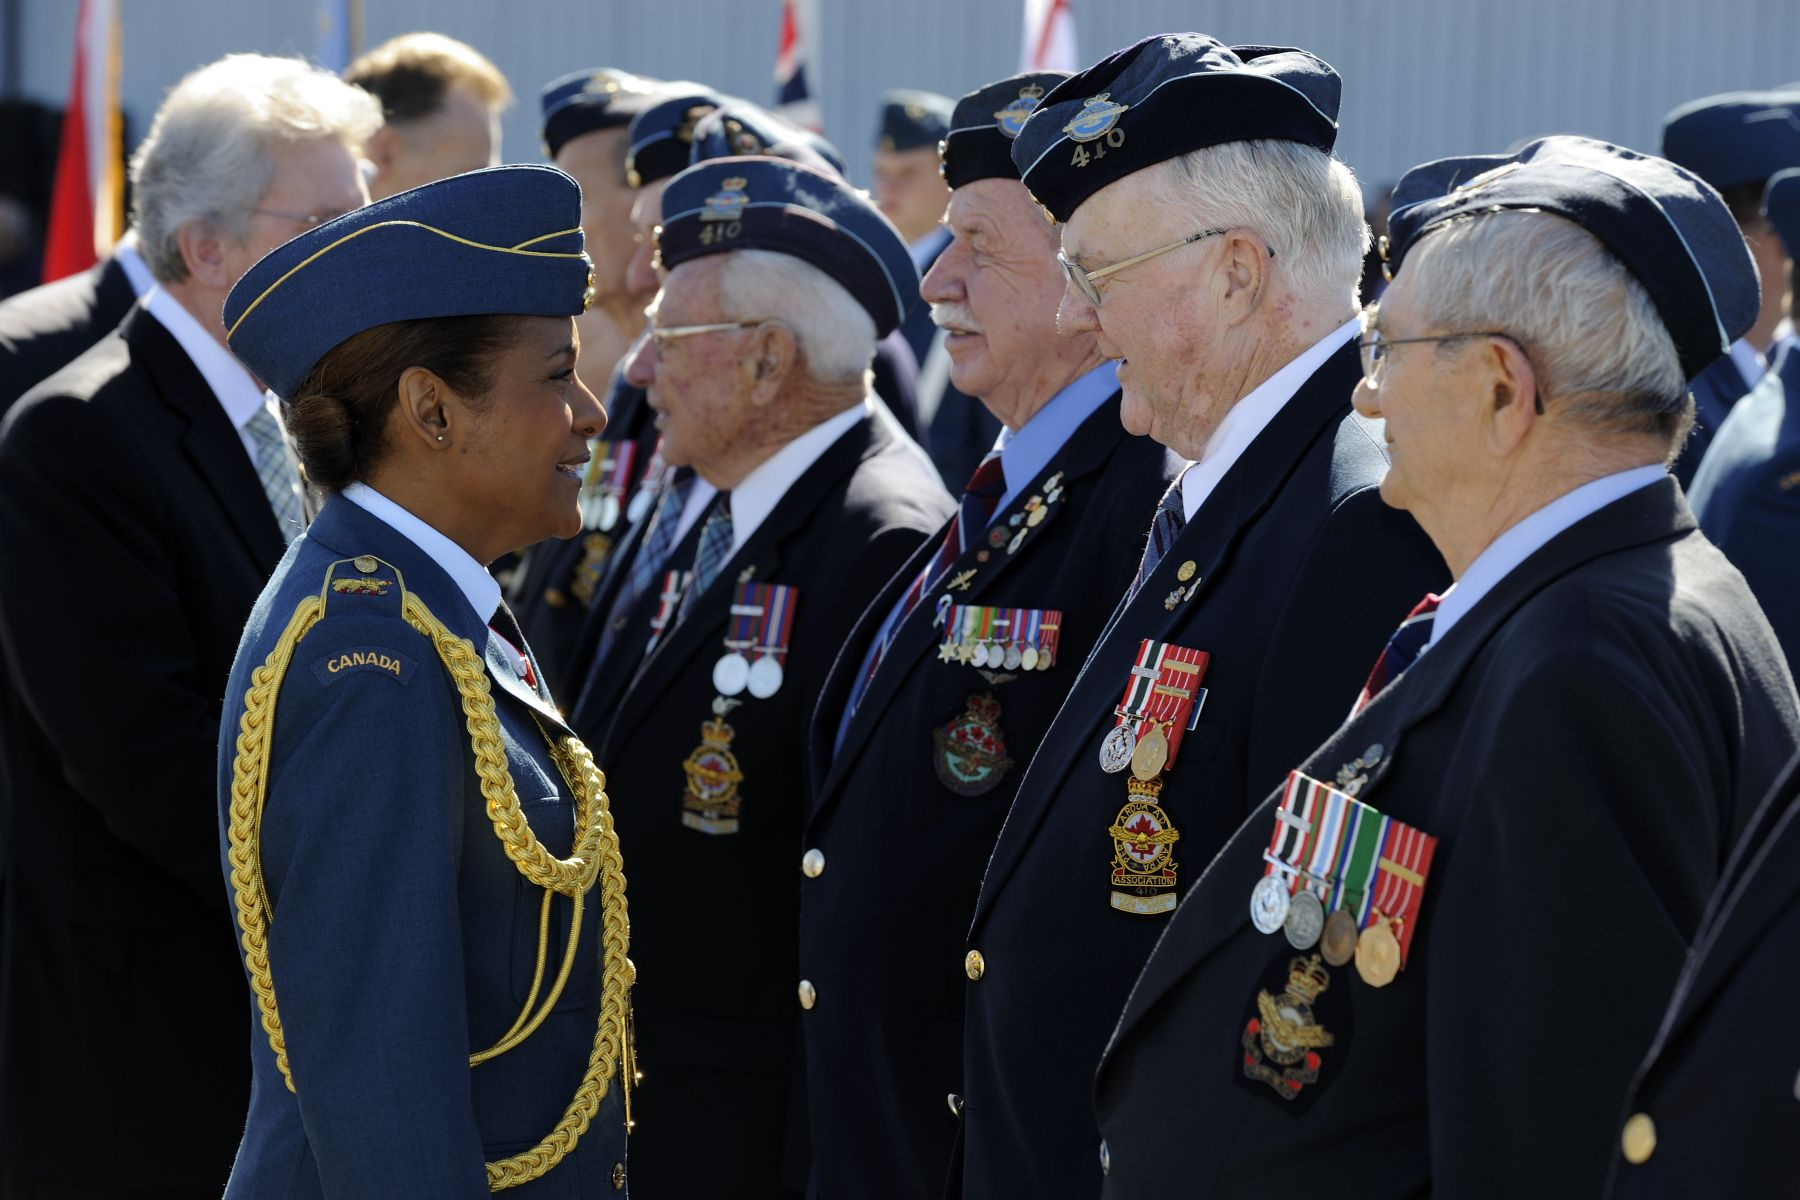 Her Excellency inspected the guard, starting with the veterans.